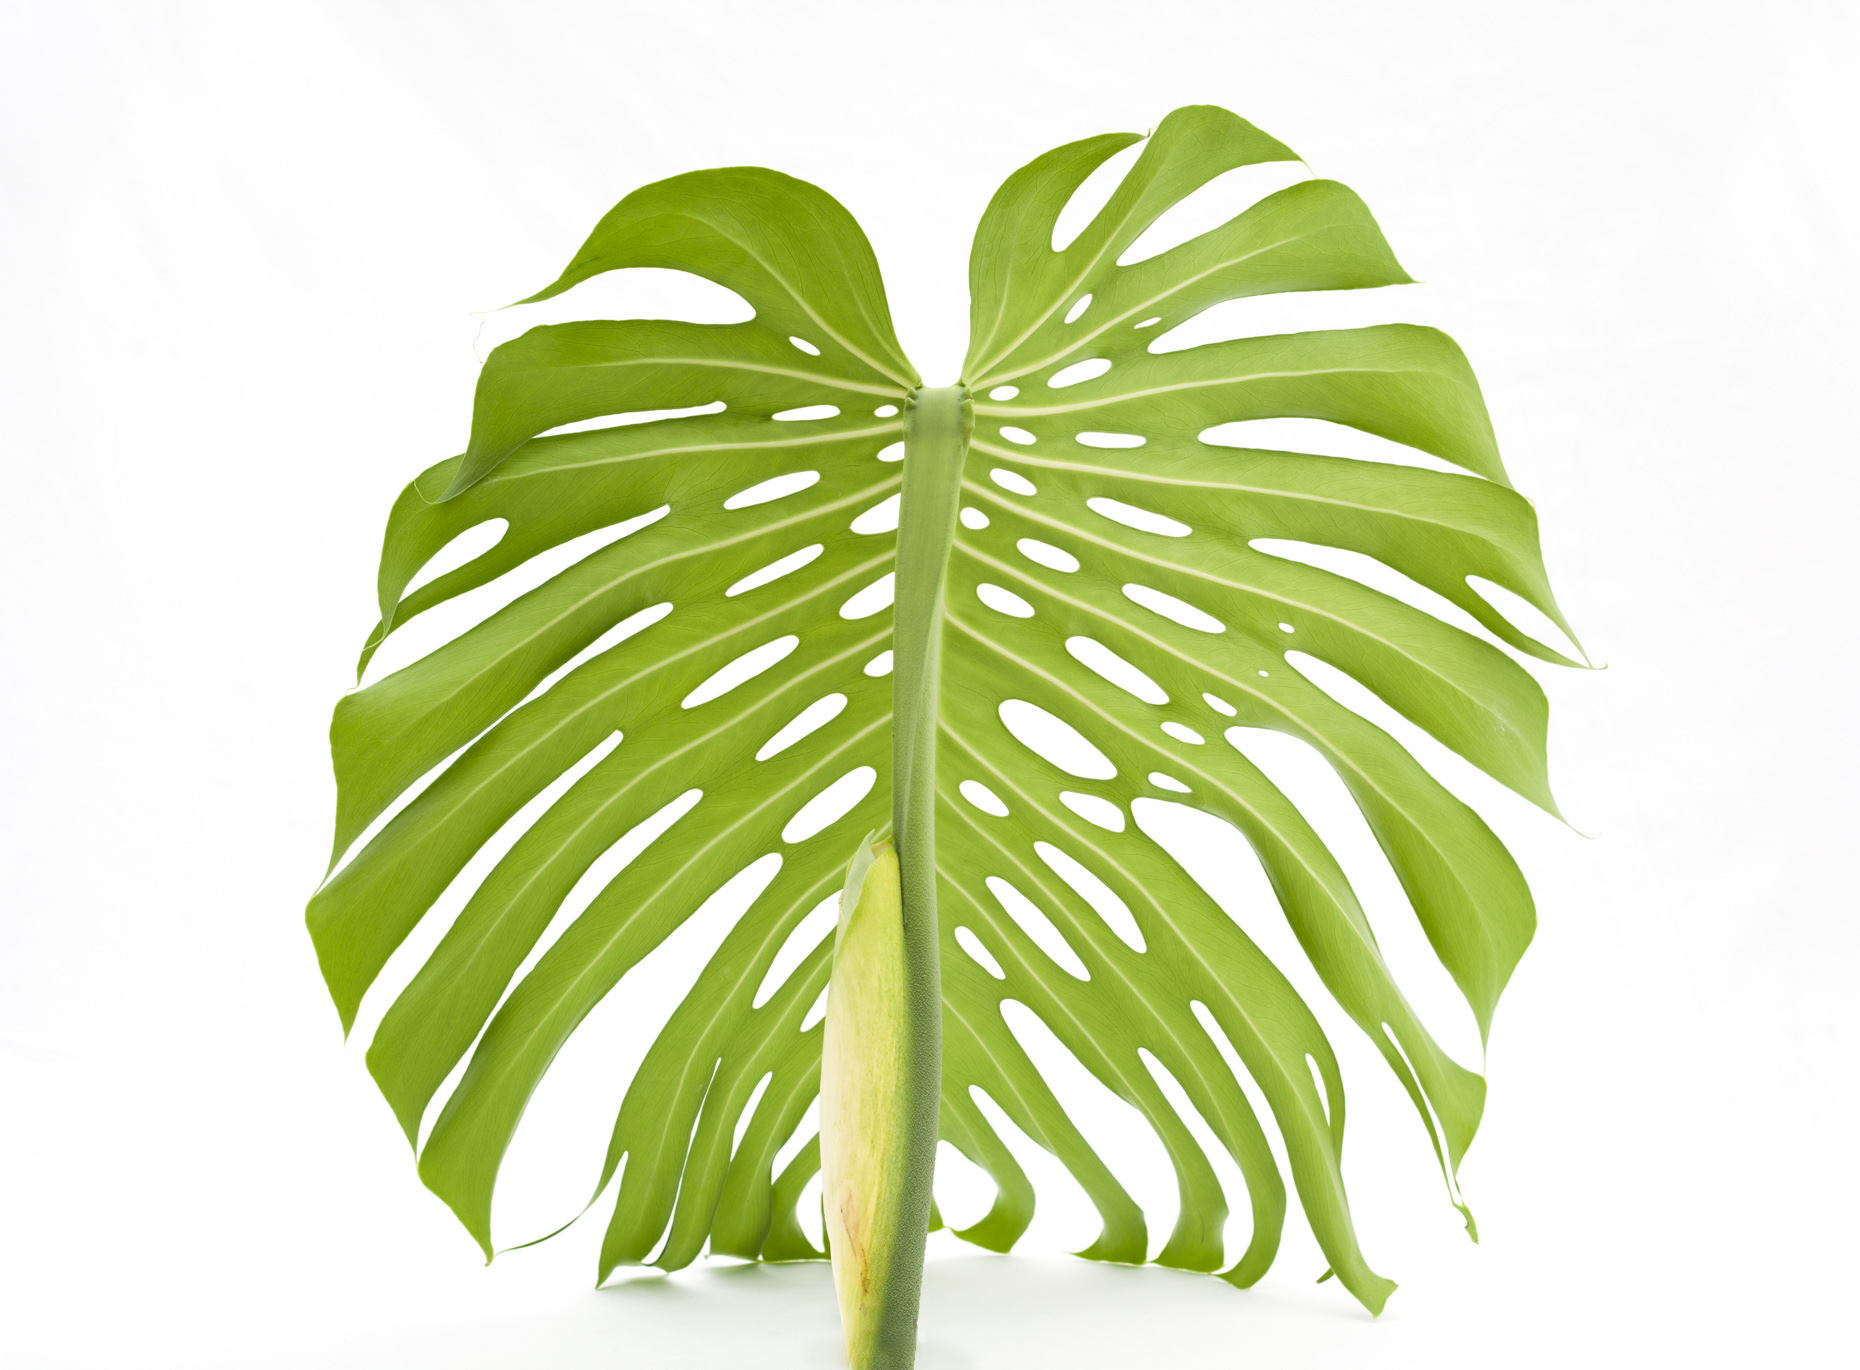 Axel Bernstorff, Collectable limited edition fine art photographic prints. Cheese plant (Monstera deliciosa)